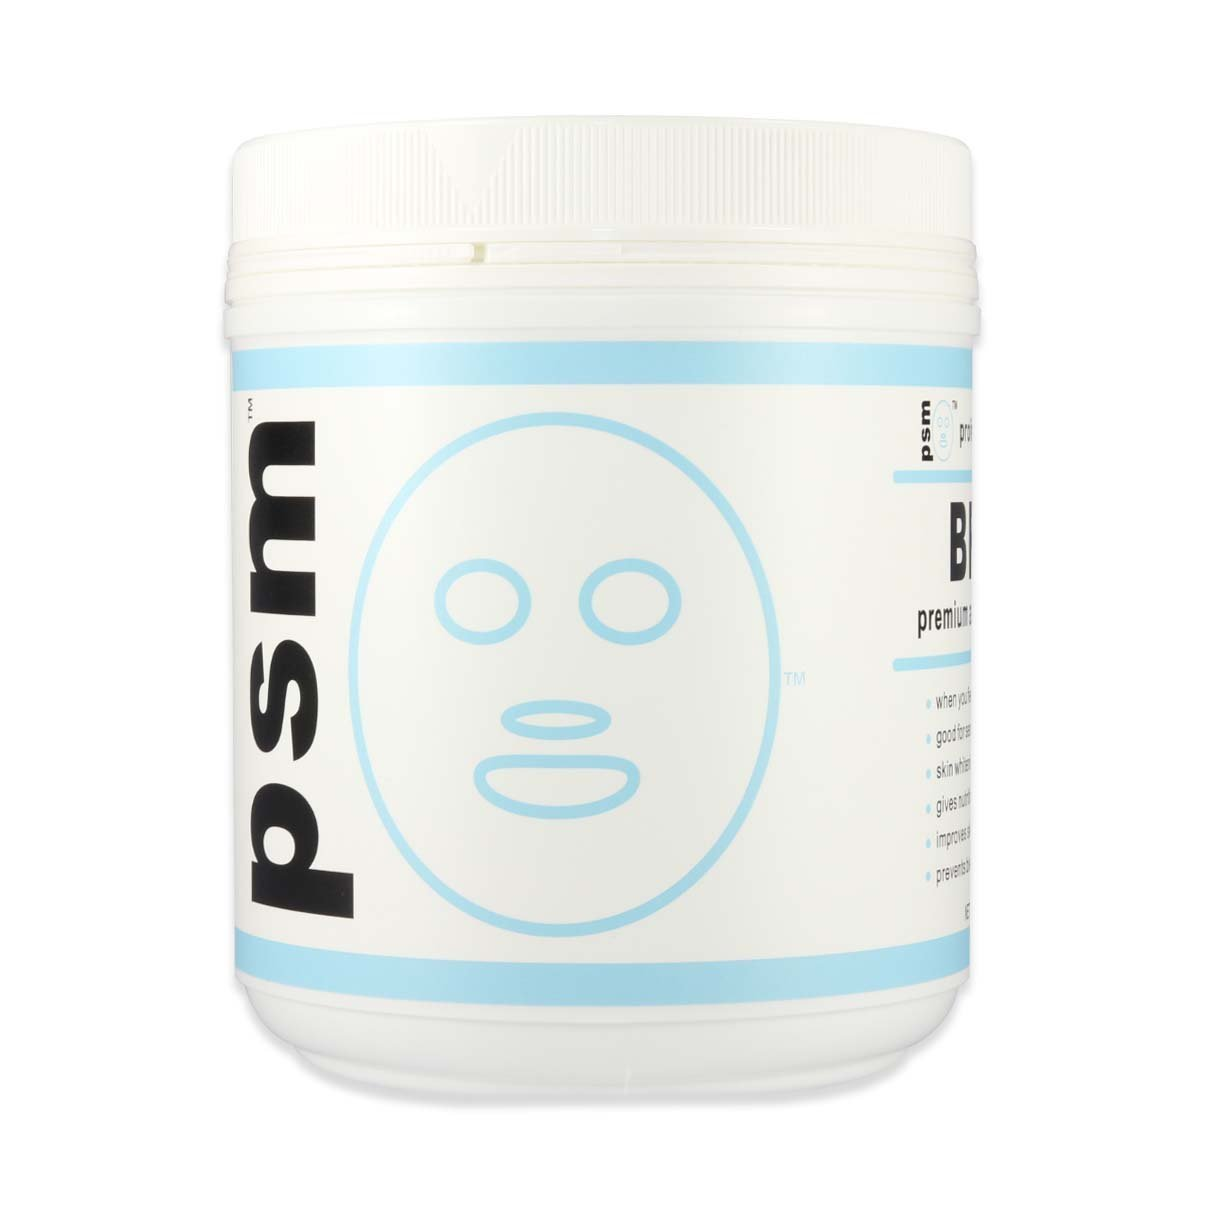 psm BRIGHT Premium Algae Peel Off Facial Mask Powder for Professional Skin Care 17.6 OZ (1.1LB / 500g) by PSM Beauty (Image #1)